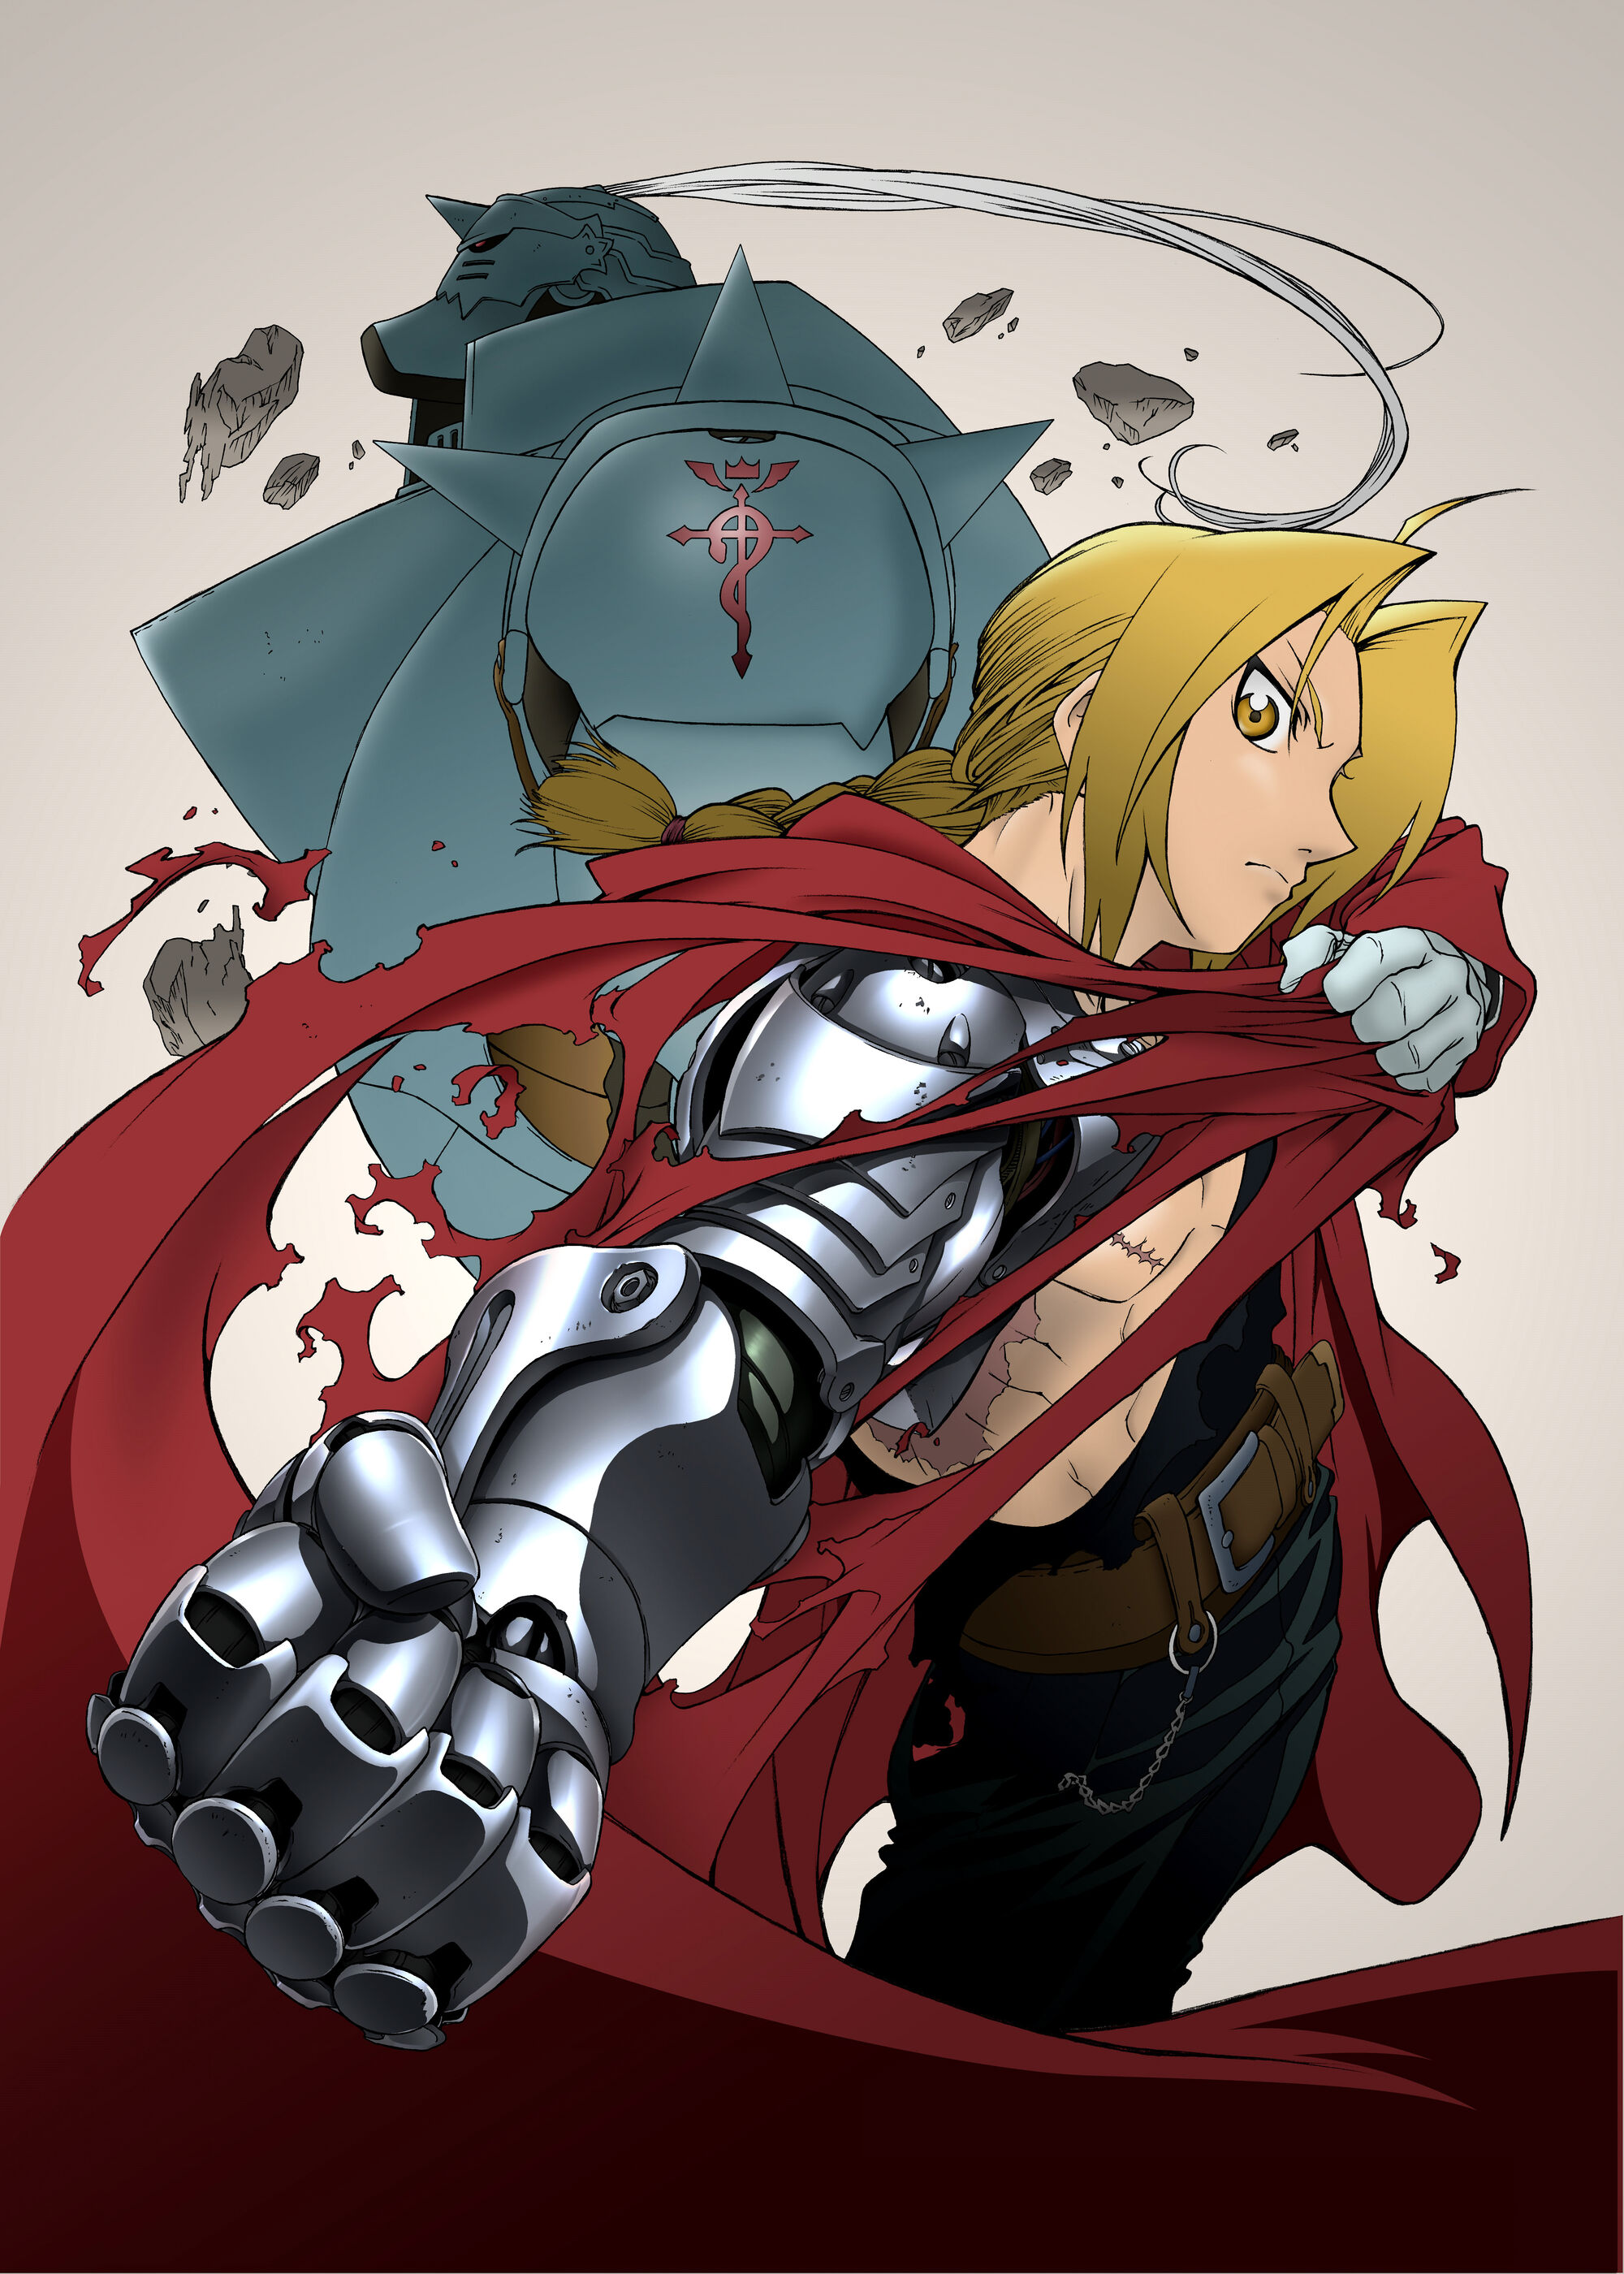 fullmetal alchemist 2003 anime full metal alchemist fandom fullmetal alchemist 2003 anime full metal alchemist fandom powered by wikia